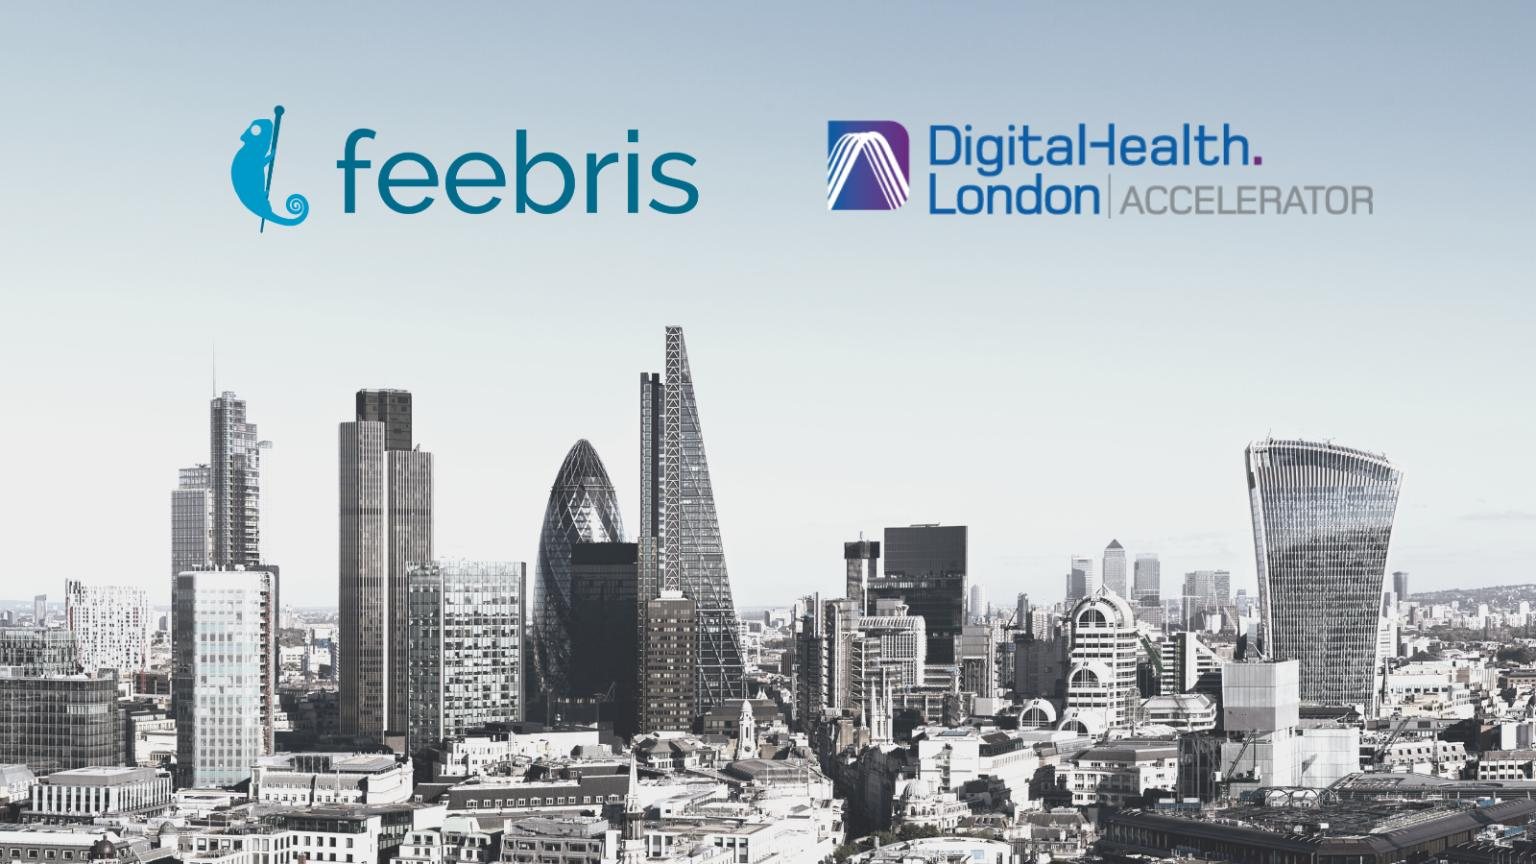 Scaling our NHS reach through the DigitalHealth.London Accelerator